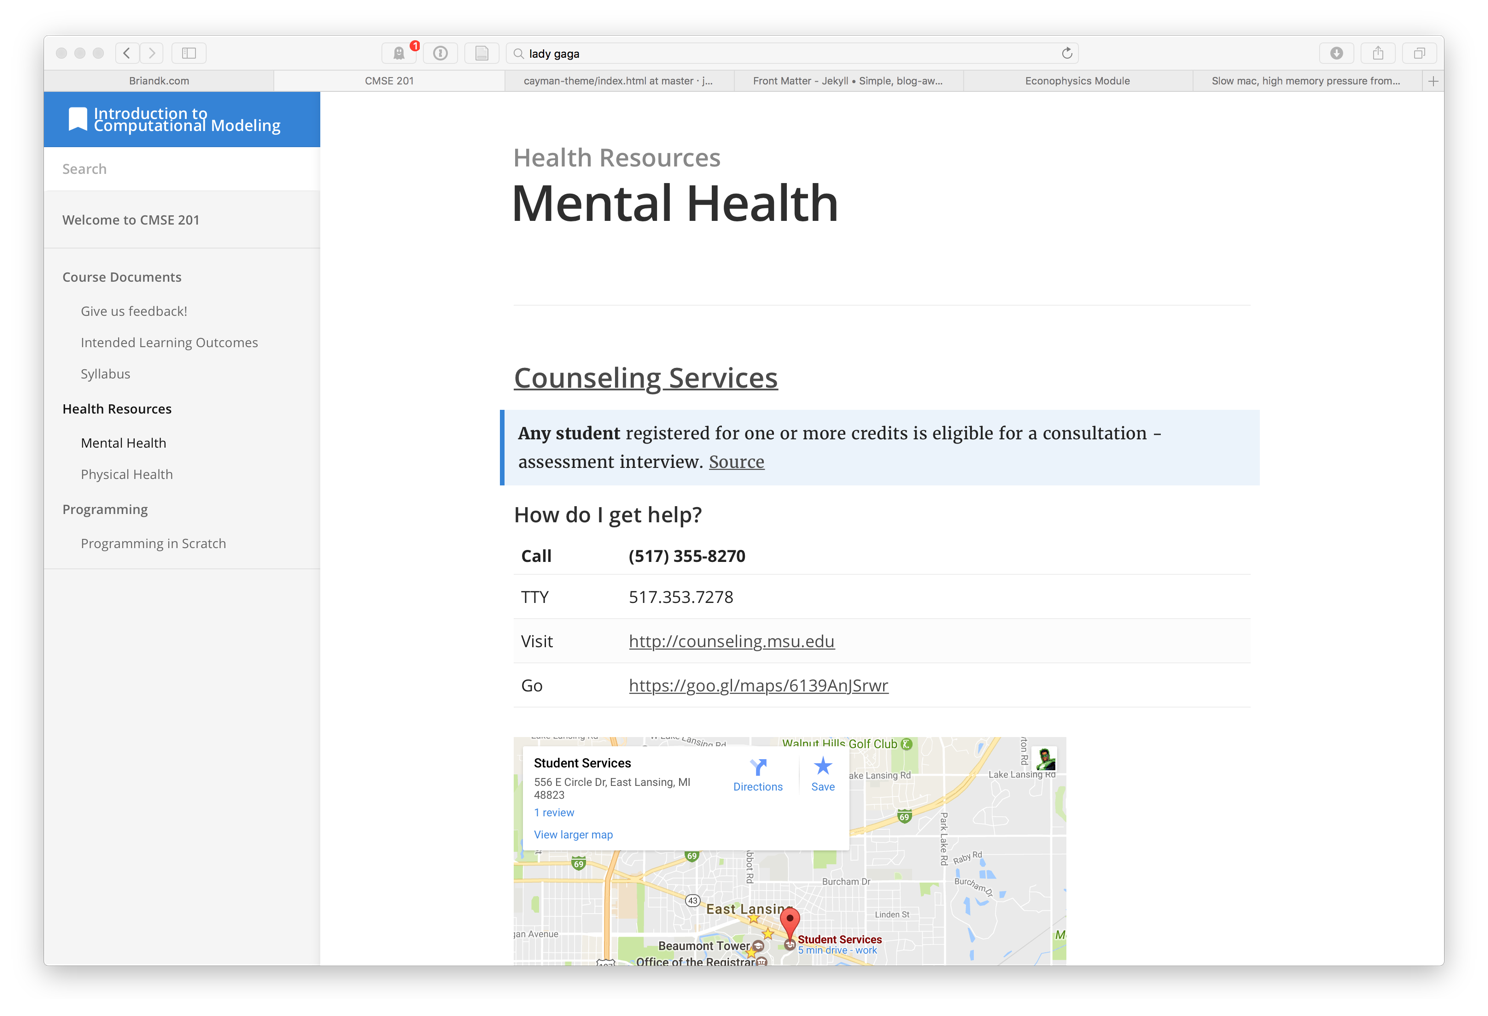 image of the course webpage on mental health, with contact info and a map to counseling services